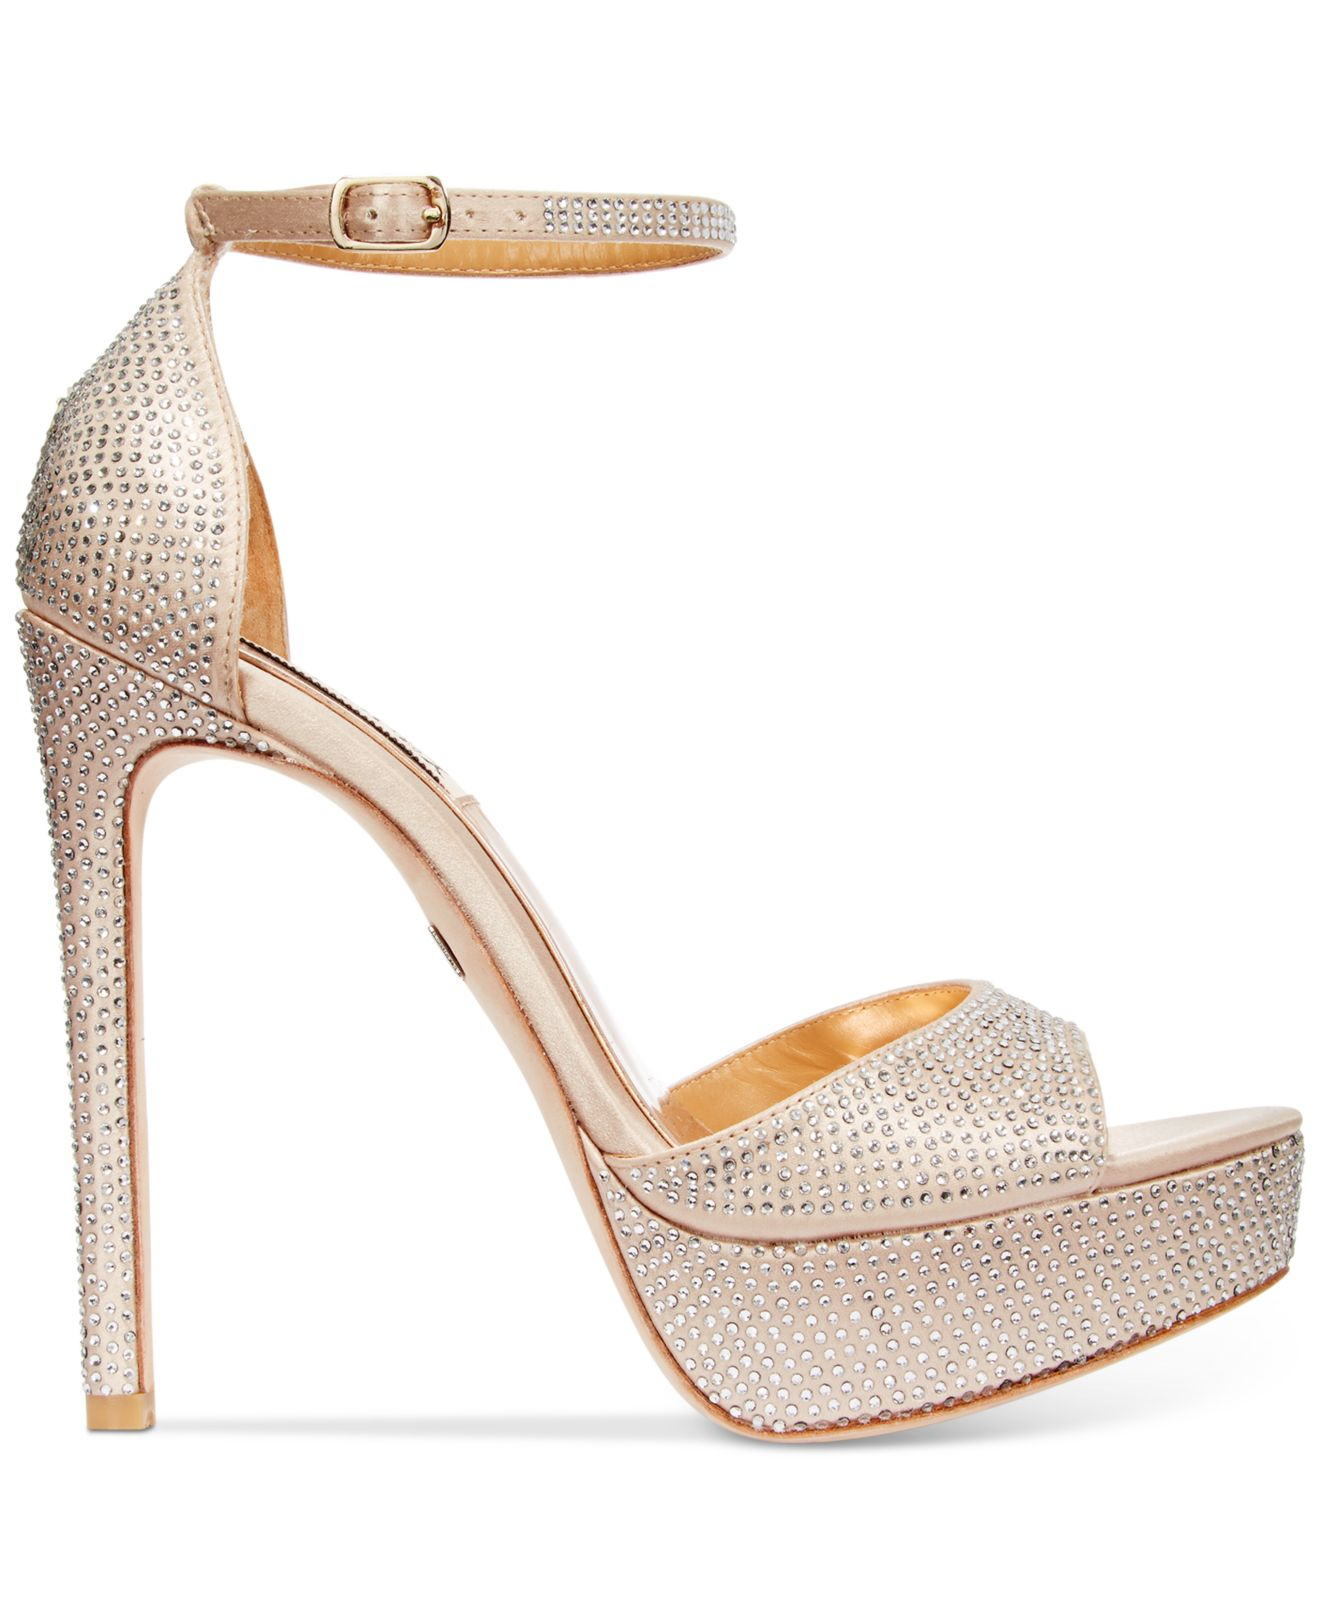 Badgley mischka Retro Ii Evening Sandals in Natural  Lyst